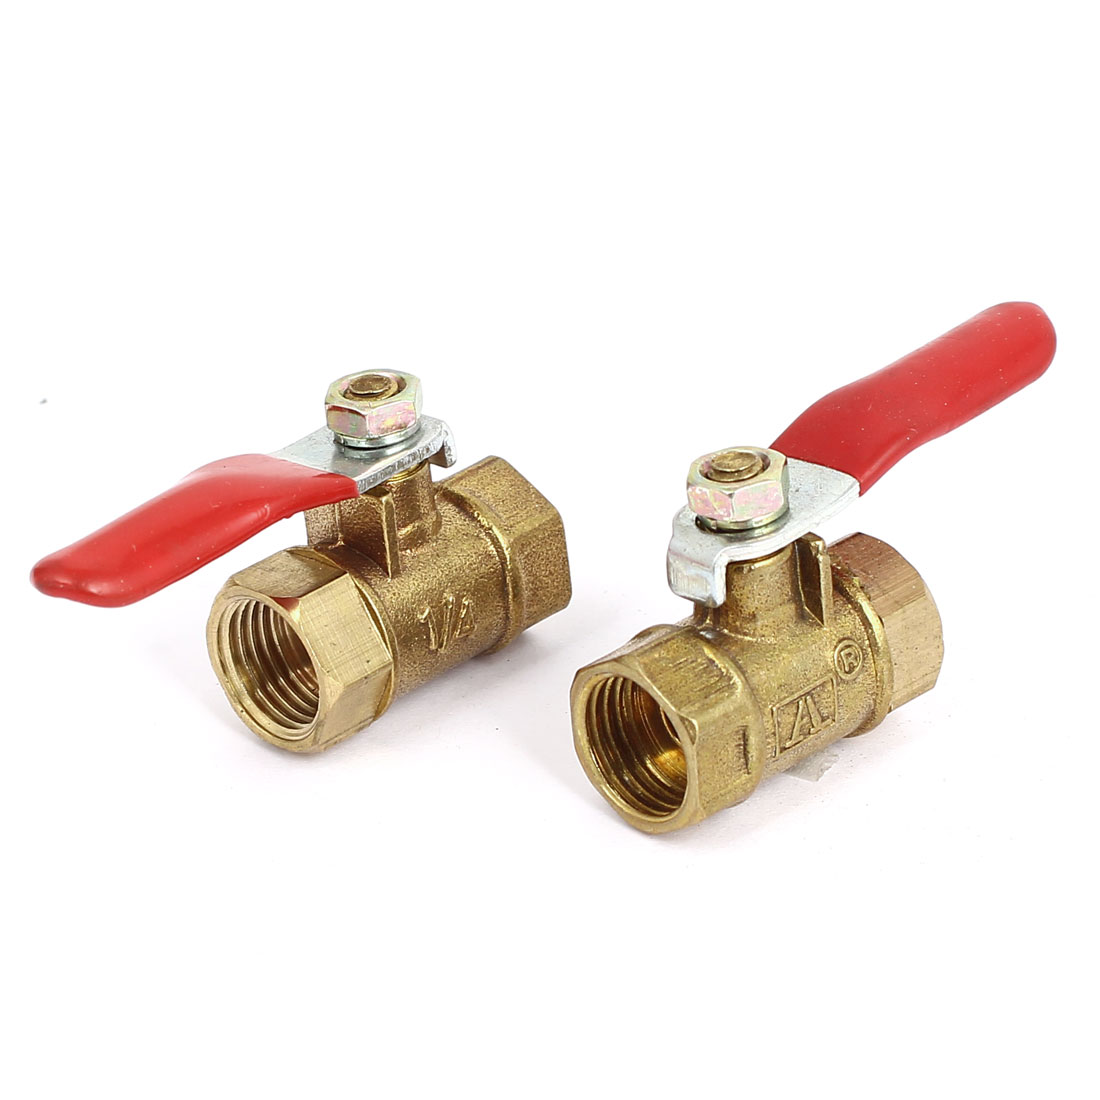 1/4BSP Female Thread F/F Red Lever Handle Full Port Brass Ball Valve 2pcs